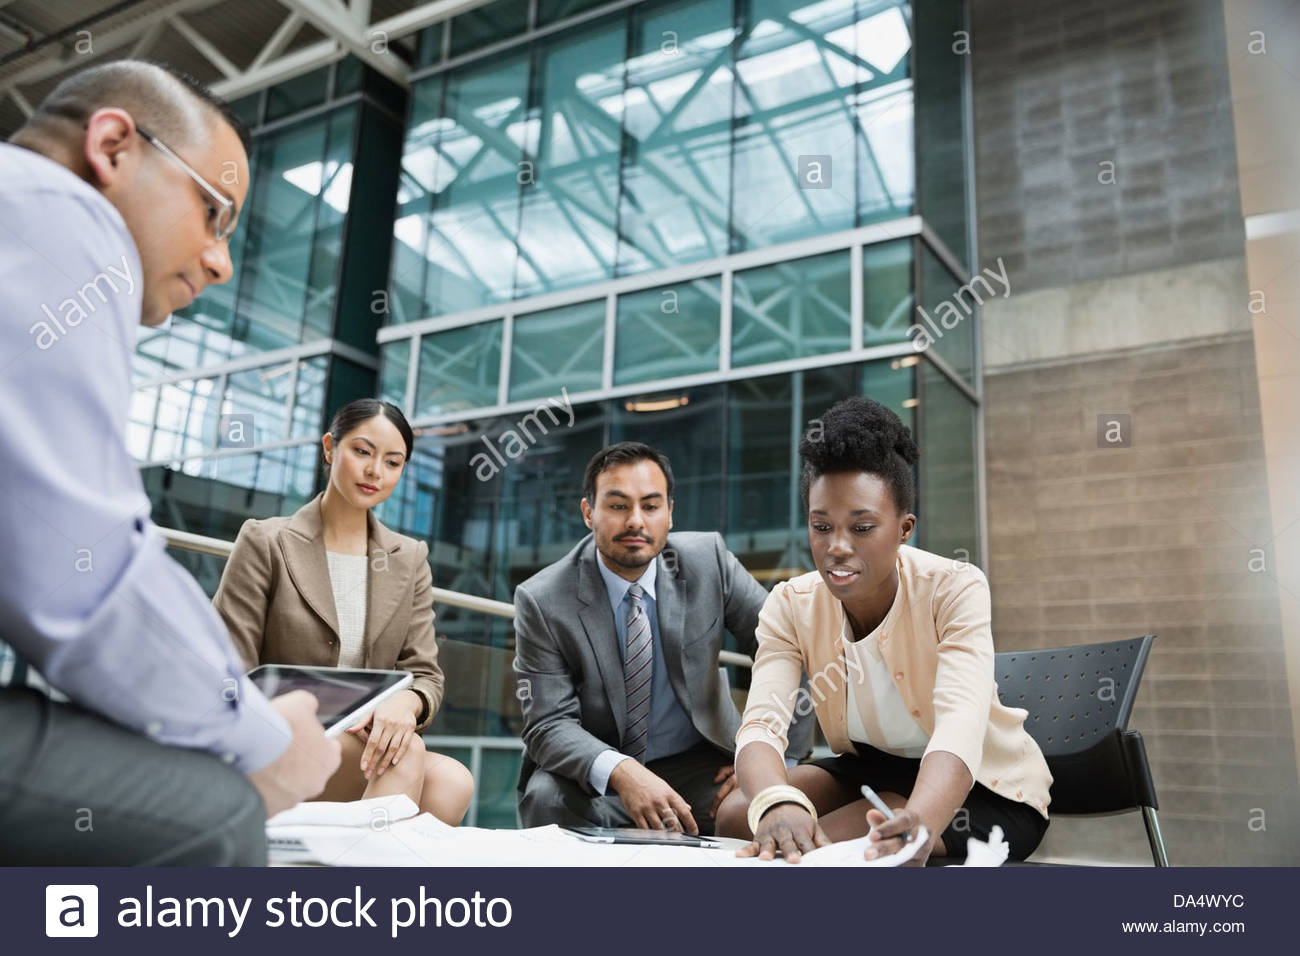 Businesspeople having meeting in office building - Stock Image